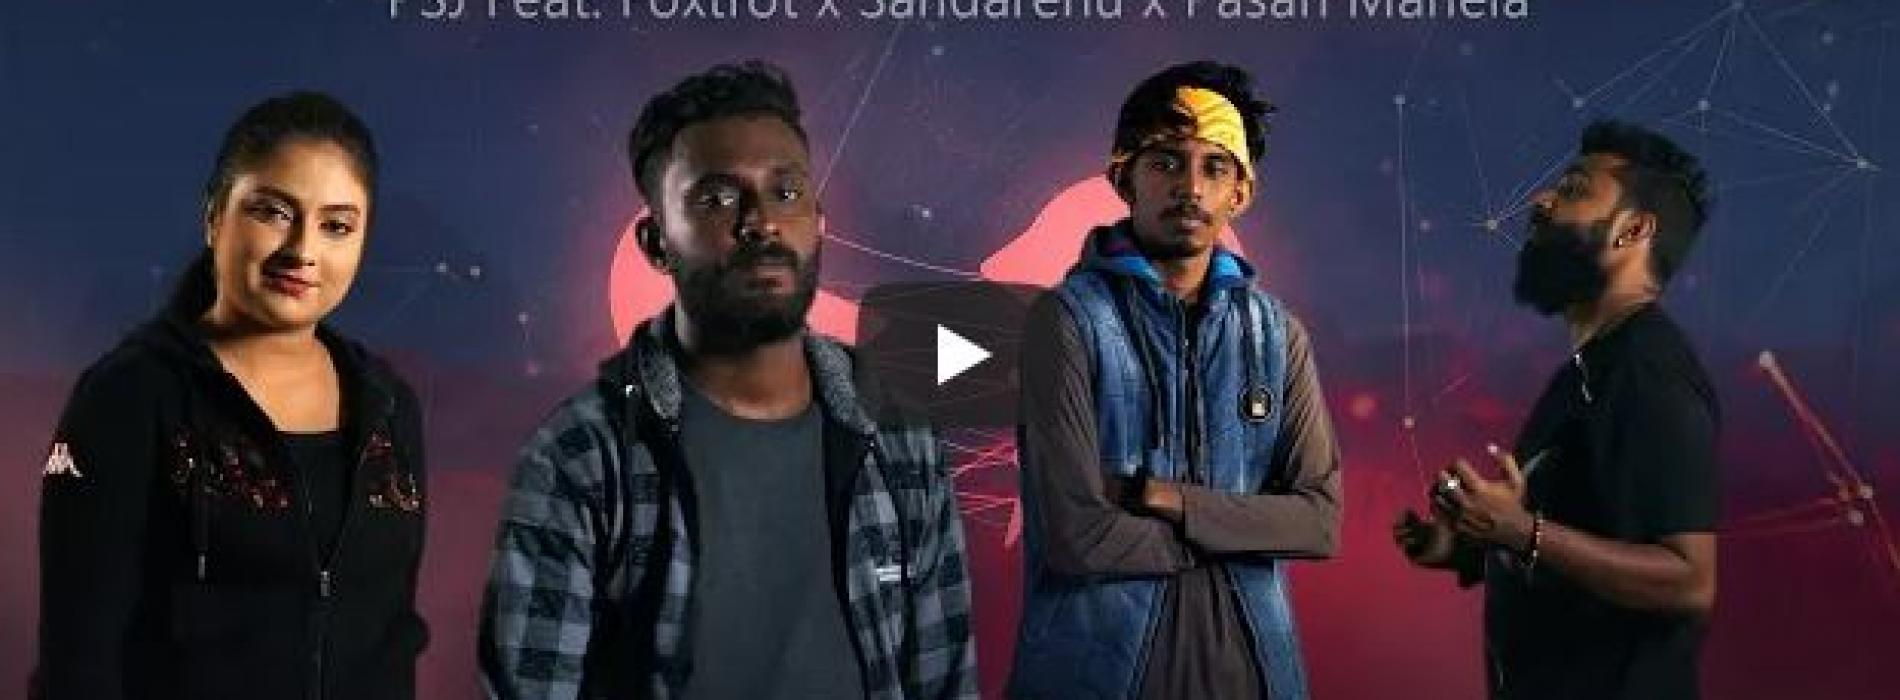 New Music : Senehasa | සෙනෙහස | PSJ Feat Foxtrot x Sandarenu x Pasan Mahela | Lyrics Video